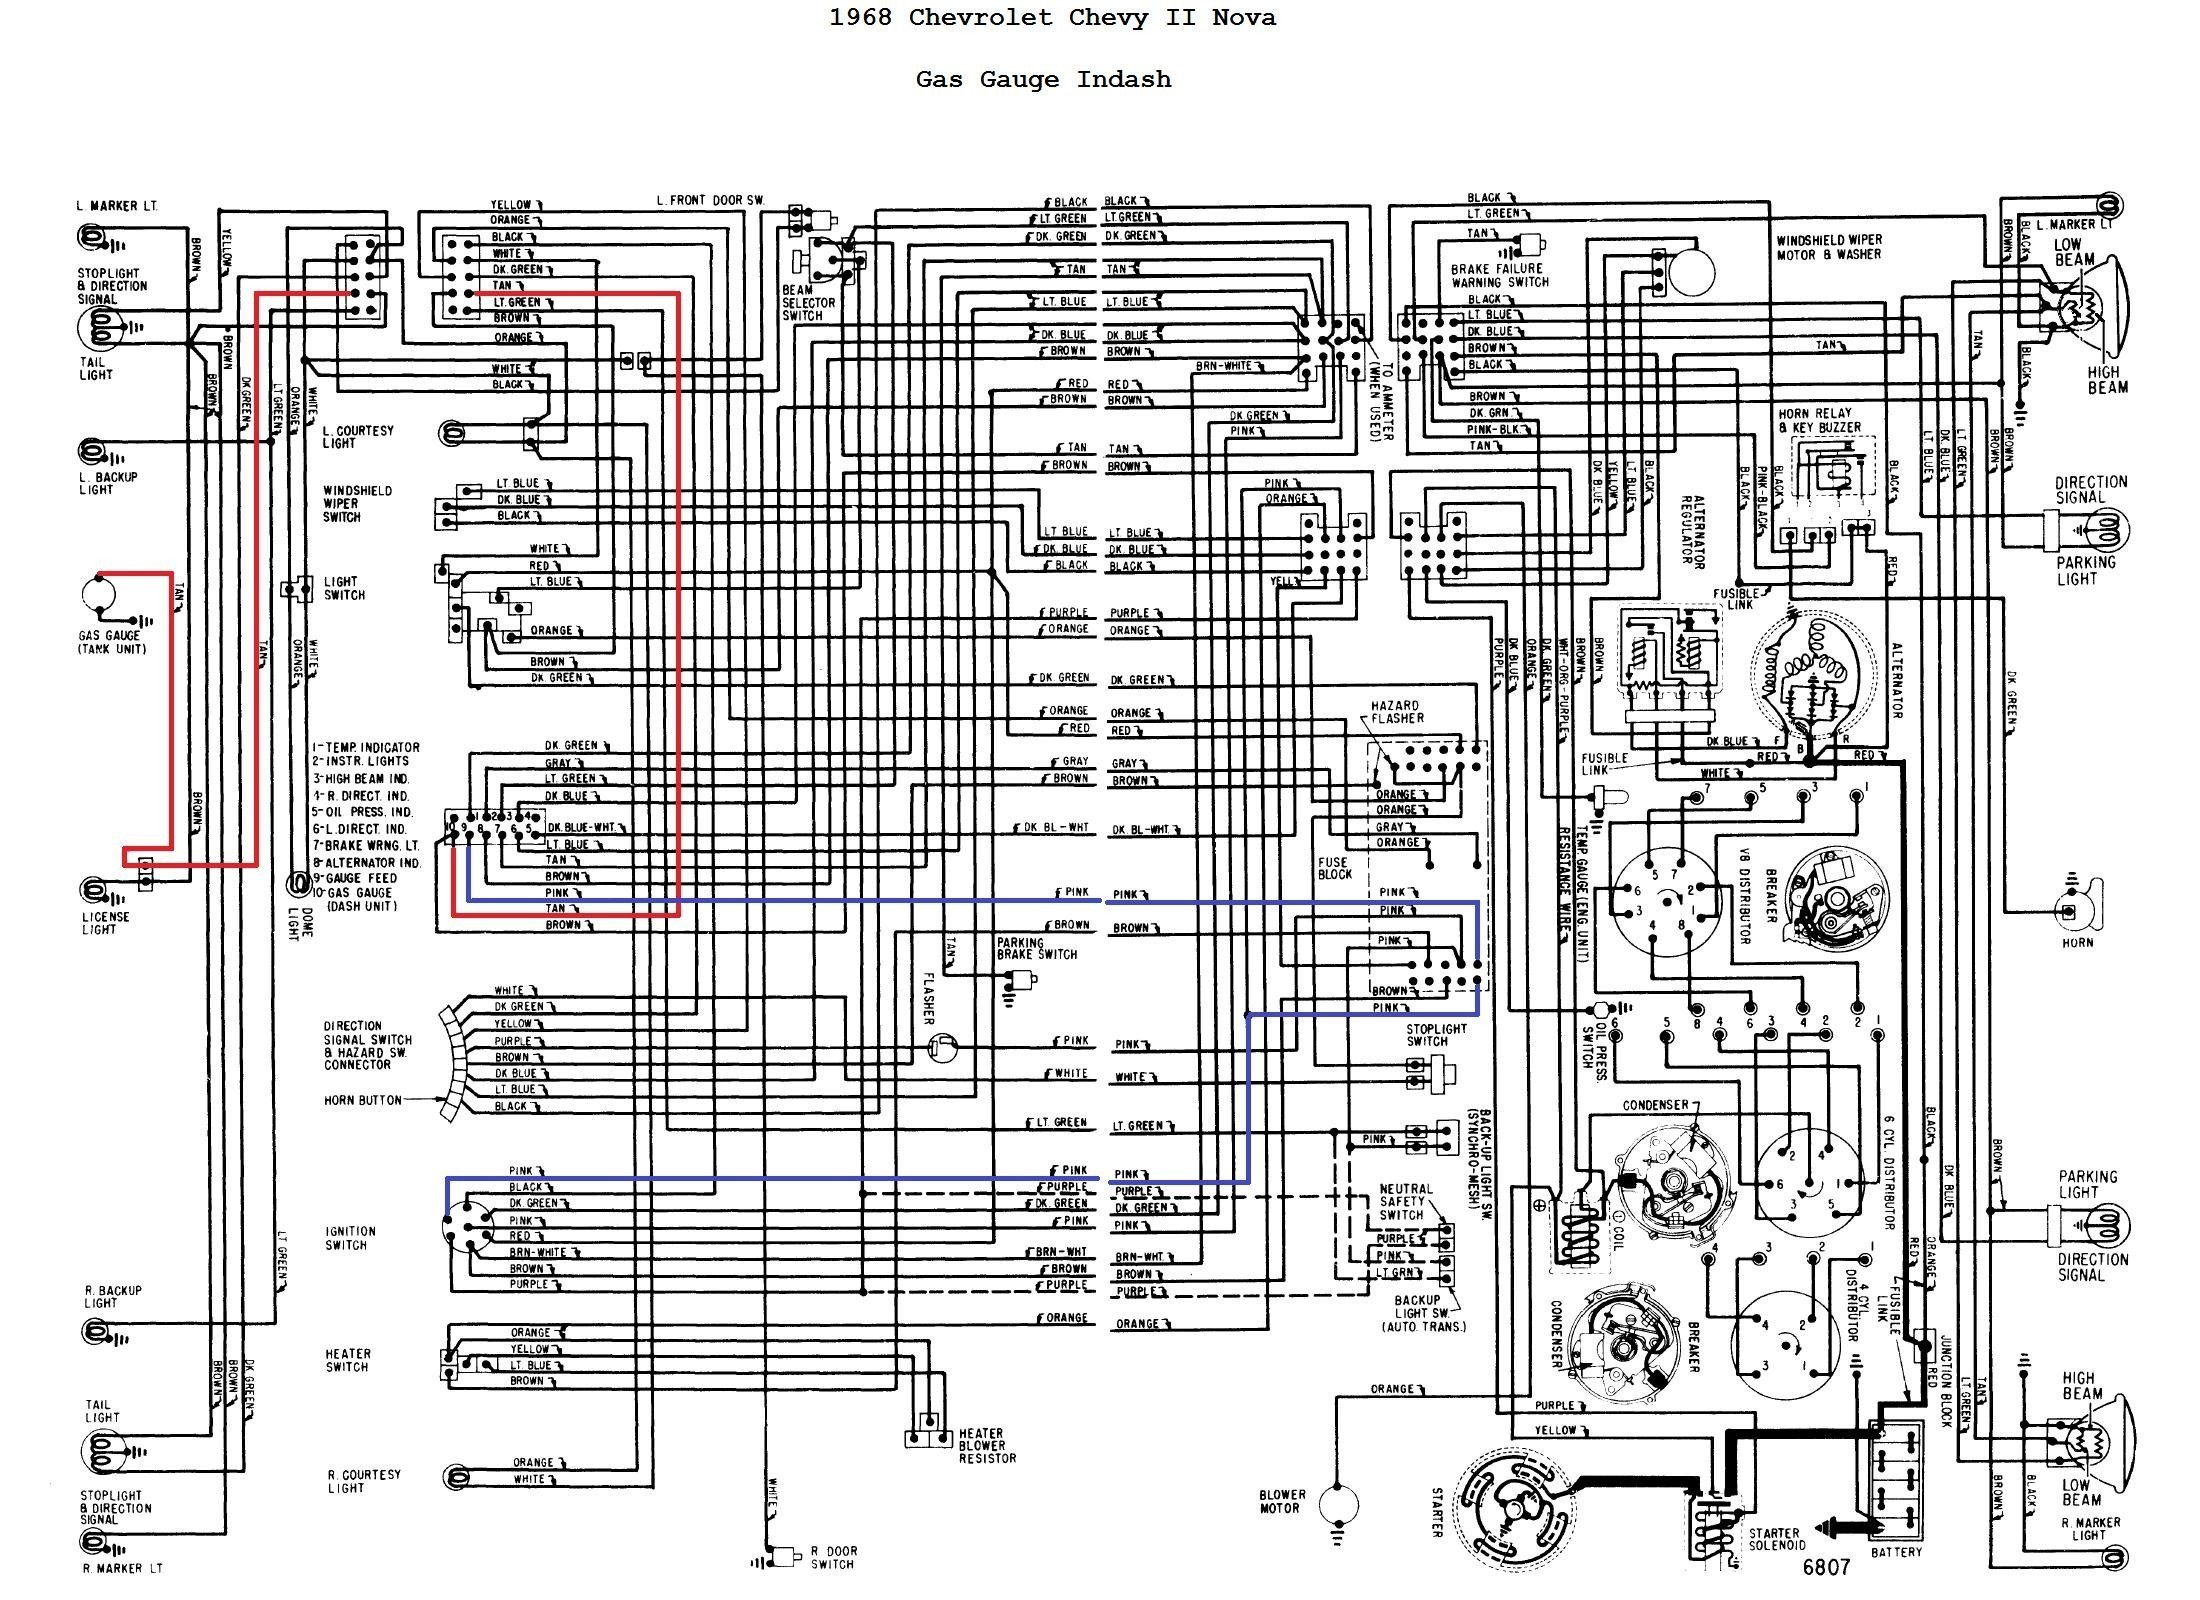 1967 camaro fuel gauge wiring diagram le 6335  1967 camaro fuel gauge wiring diagram download diagram  1967 camaro fuel gauge wiring diagram